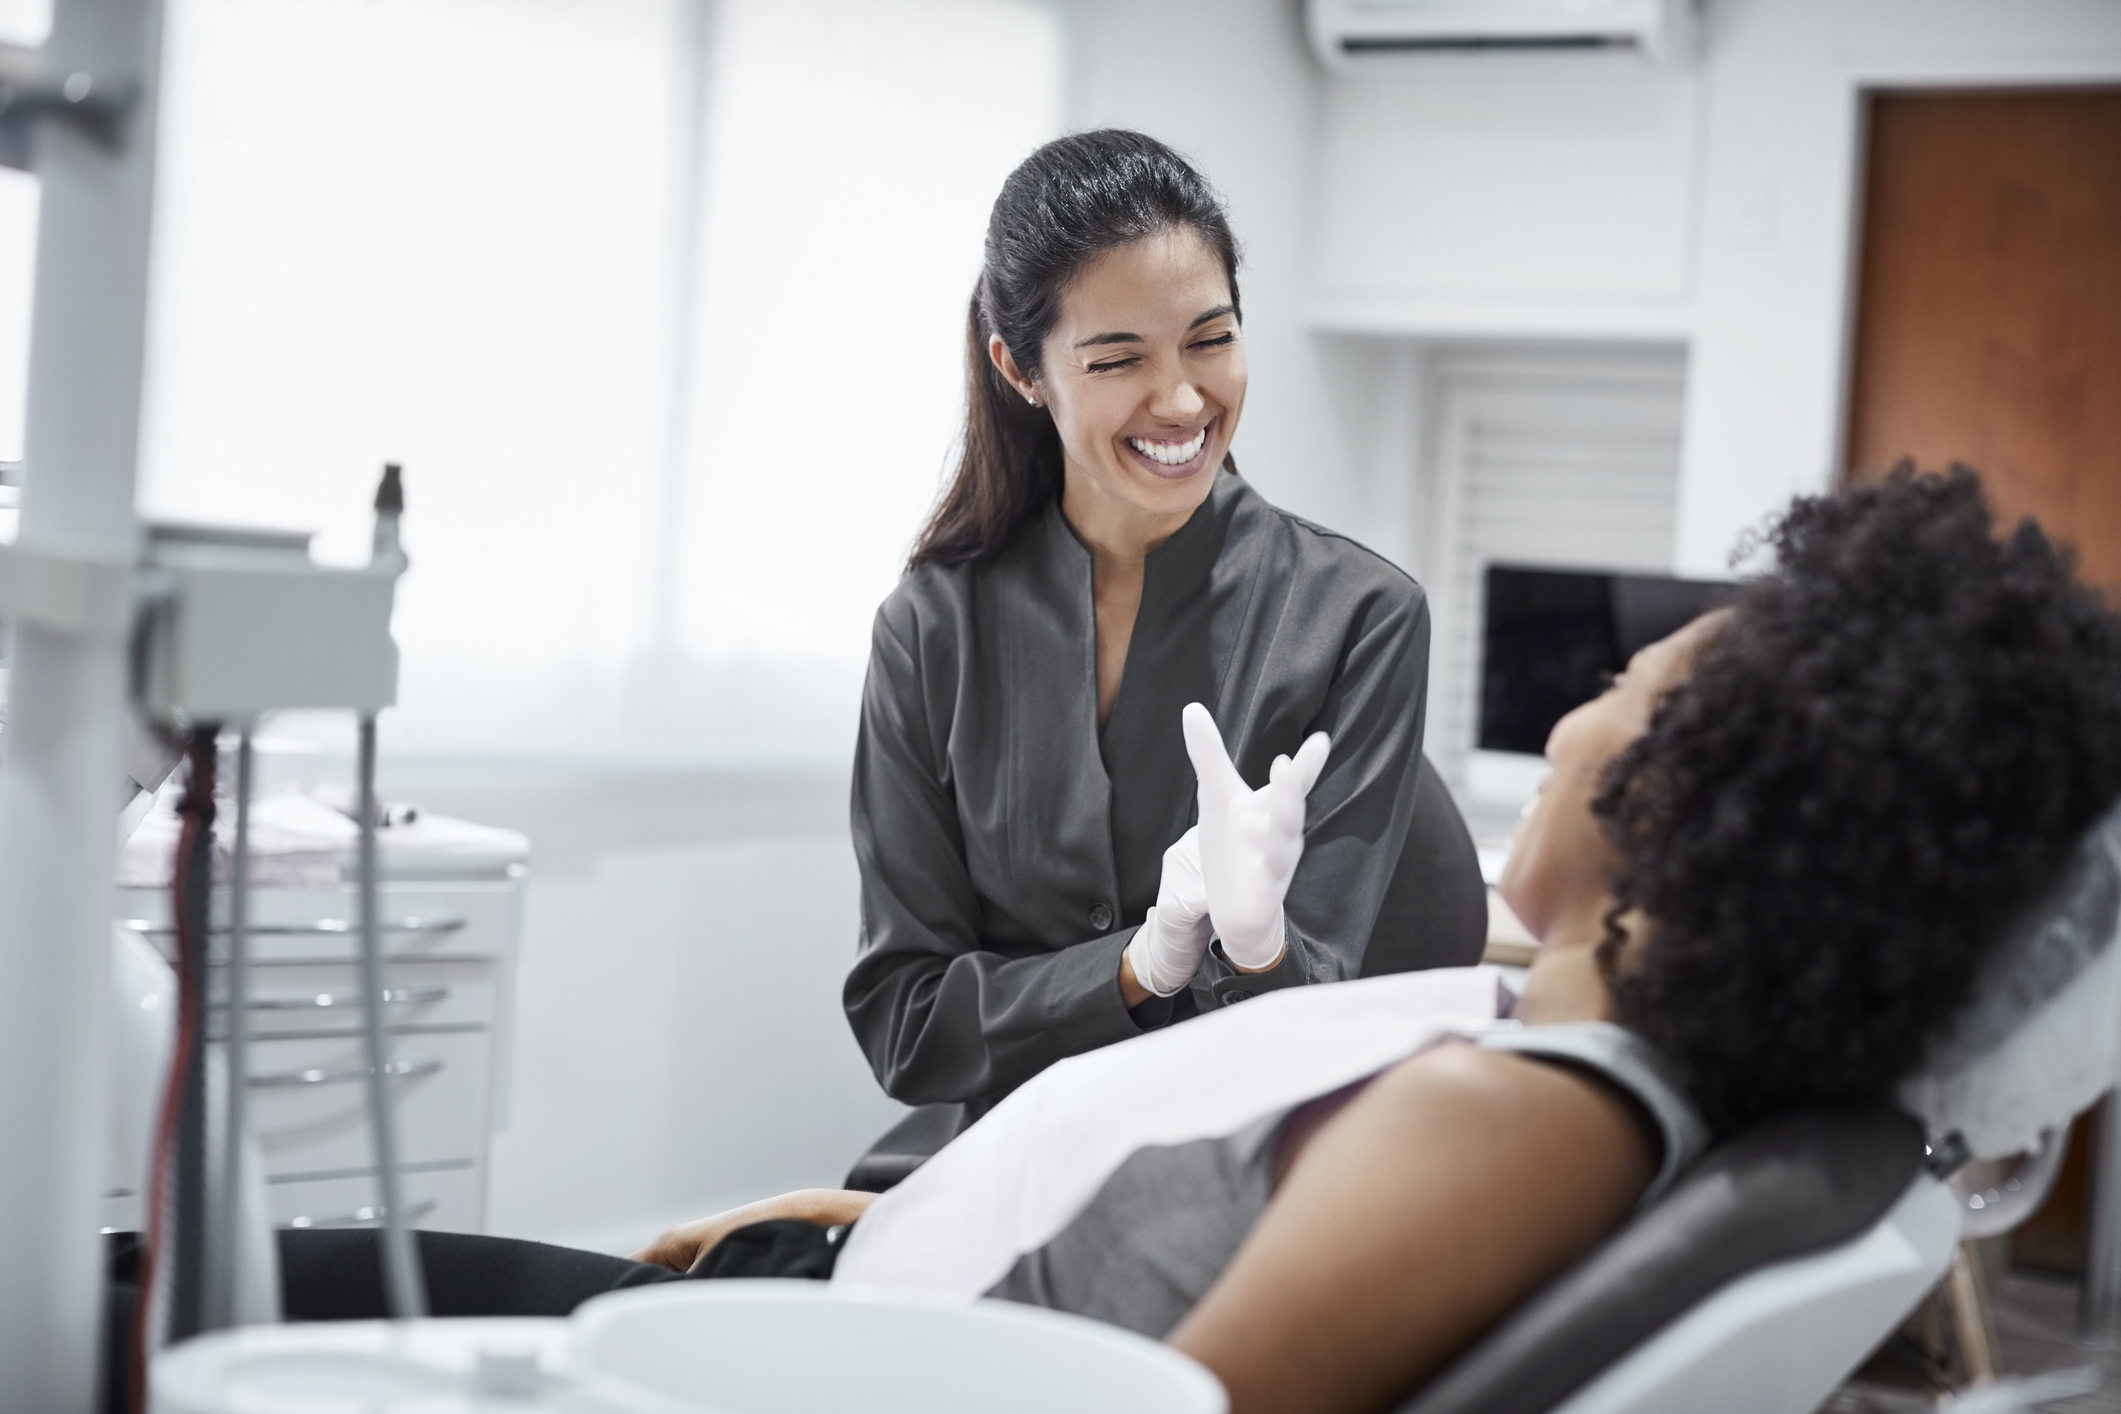 Female dentist putting on latex gloves and smiling at a patient in a dental chair